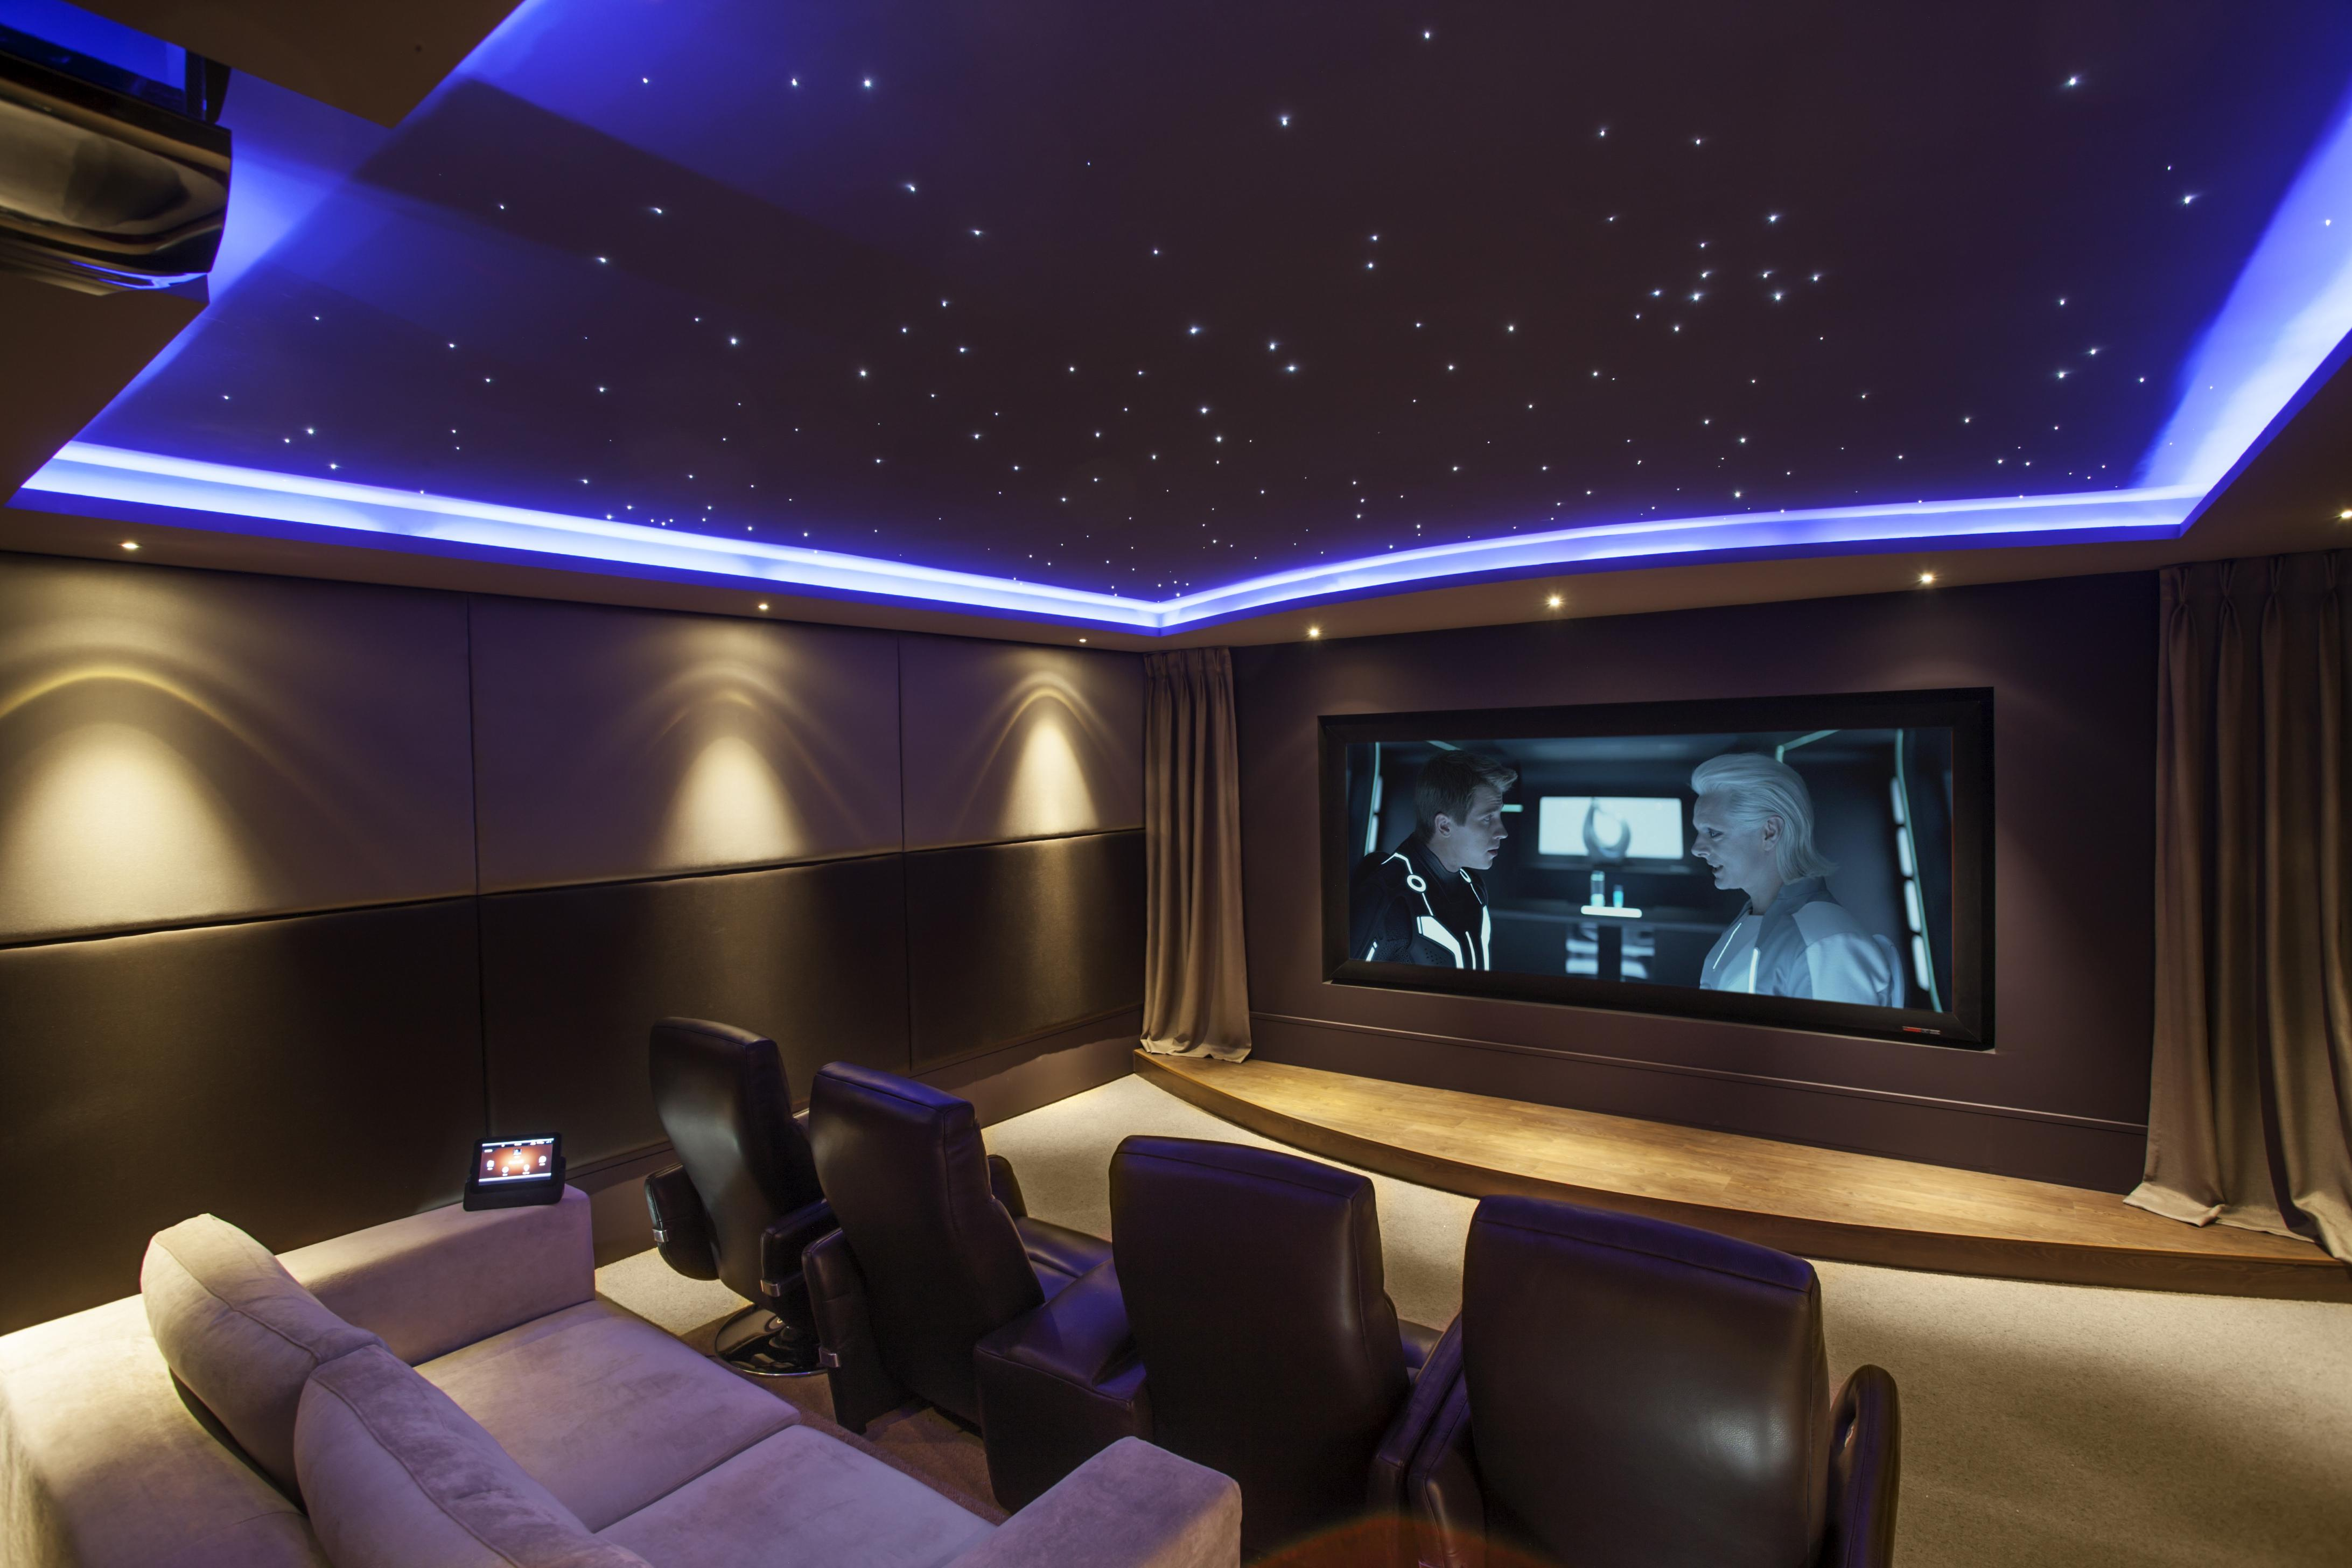 home theater system installation nj - Home Theater Design